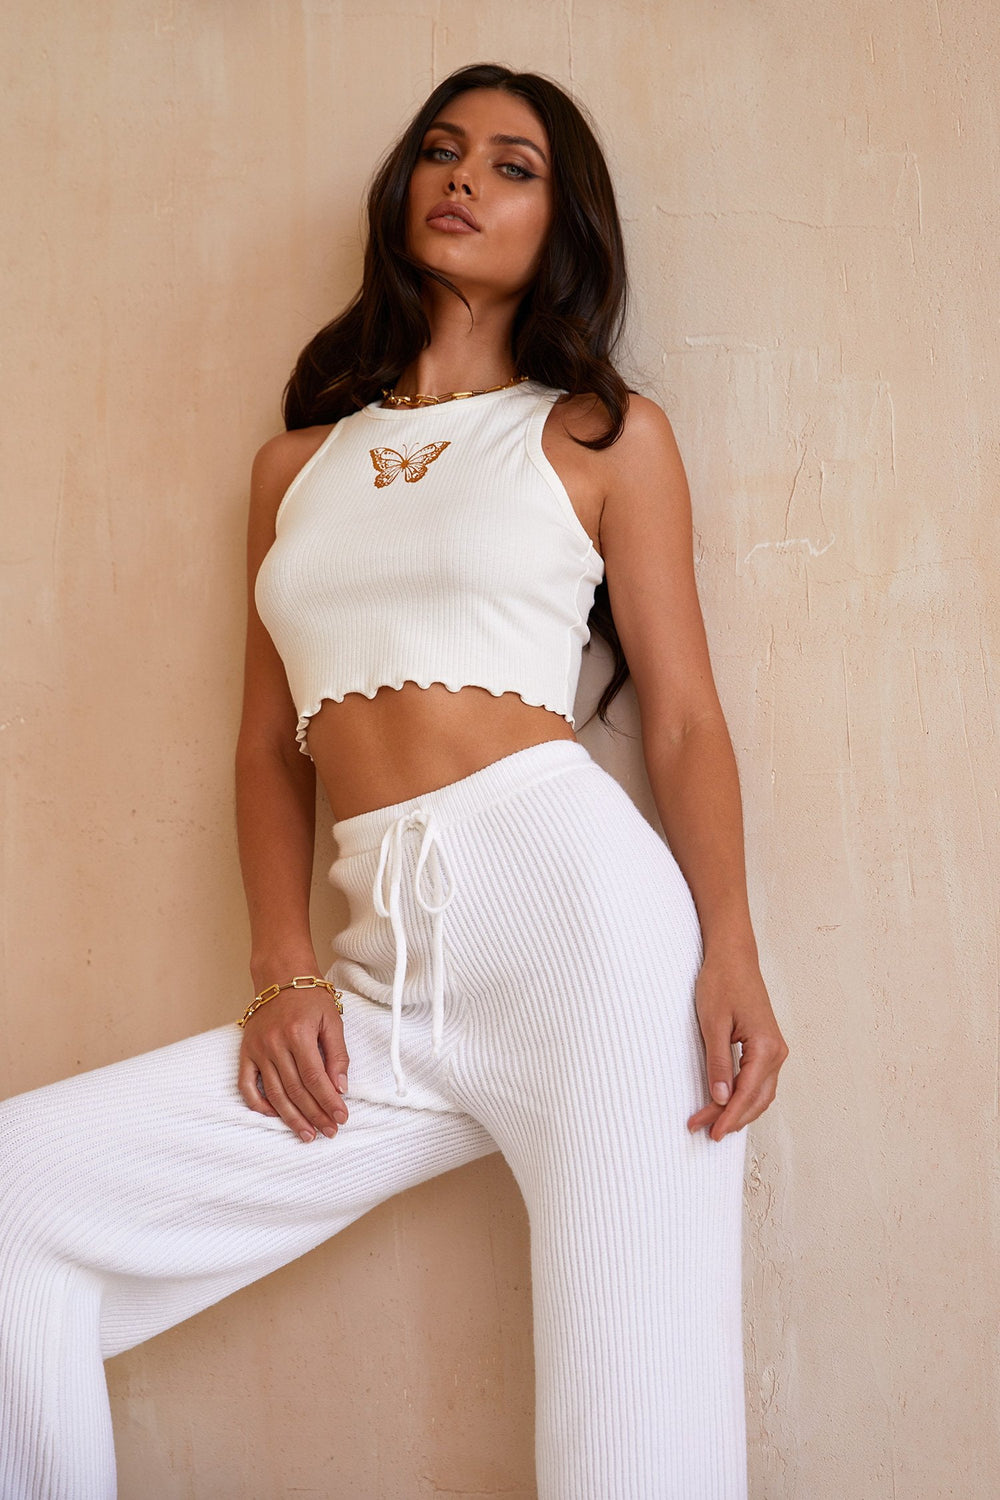 Alexa Pants - High Waisted White Flared Lounge Pants